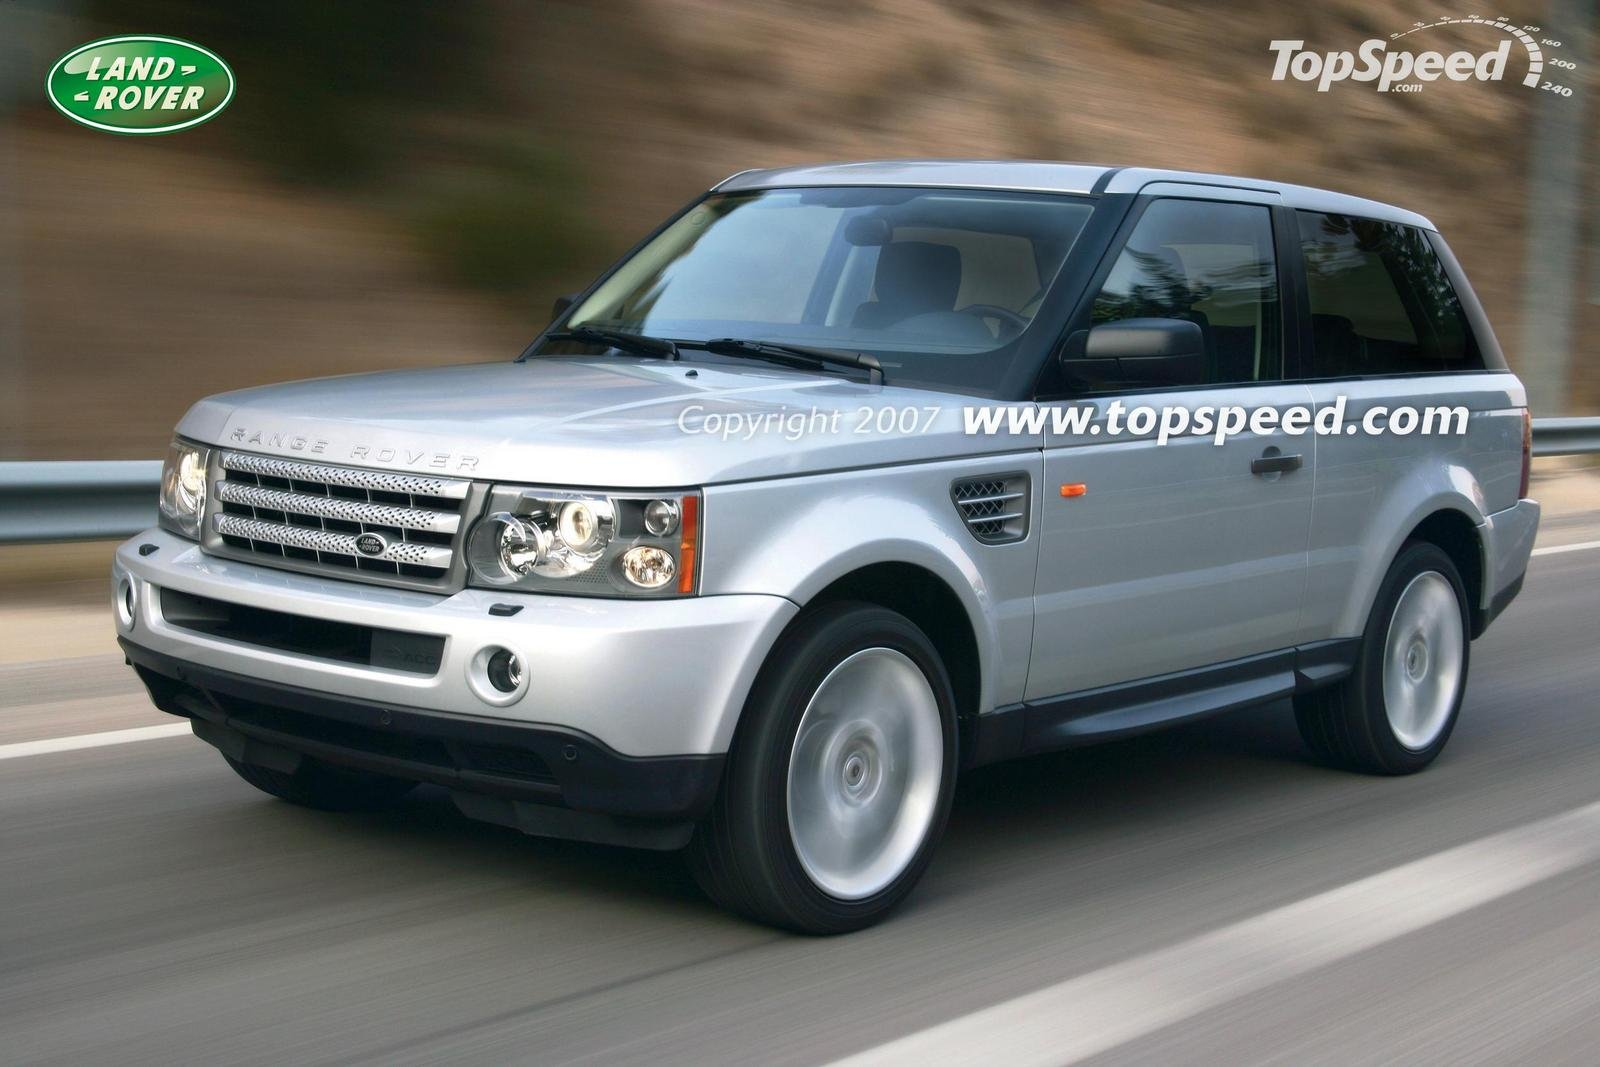 2009 range rover sport 2 doors review top speed. Black Bedroom Furniture Sets. Home Design Ideas